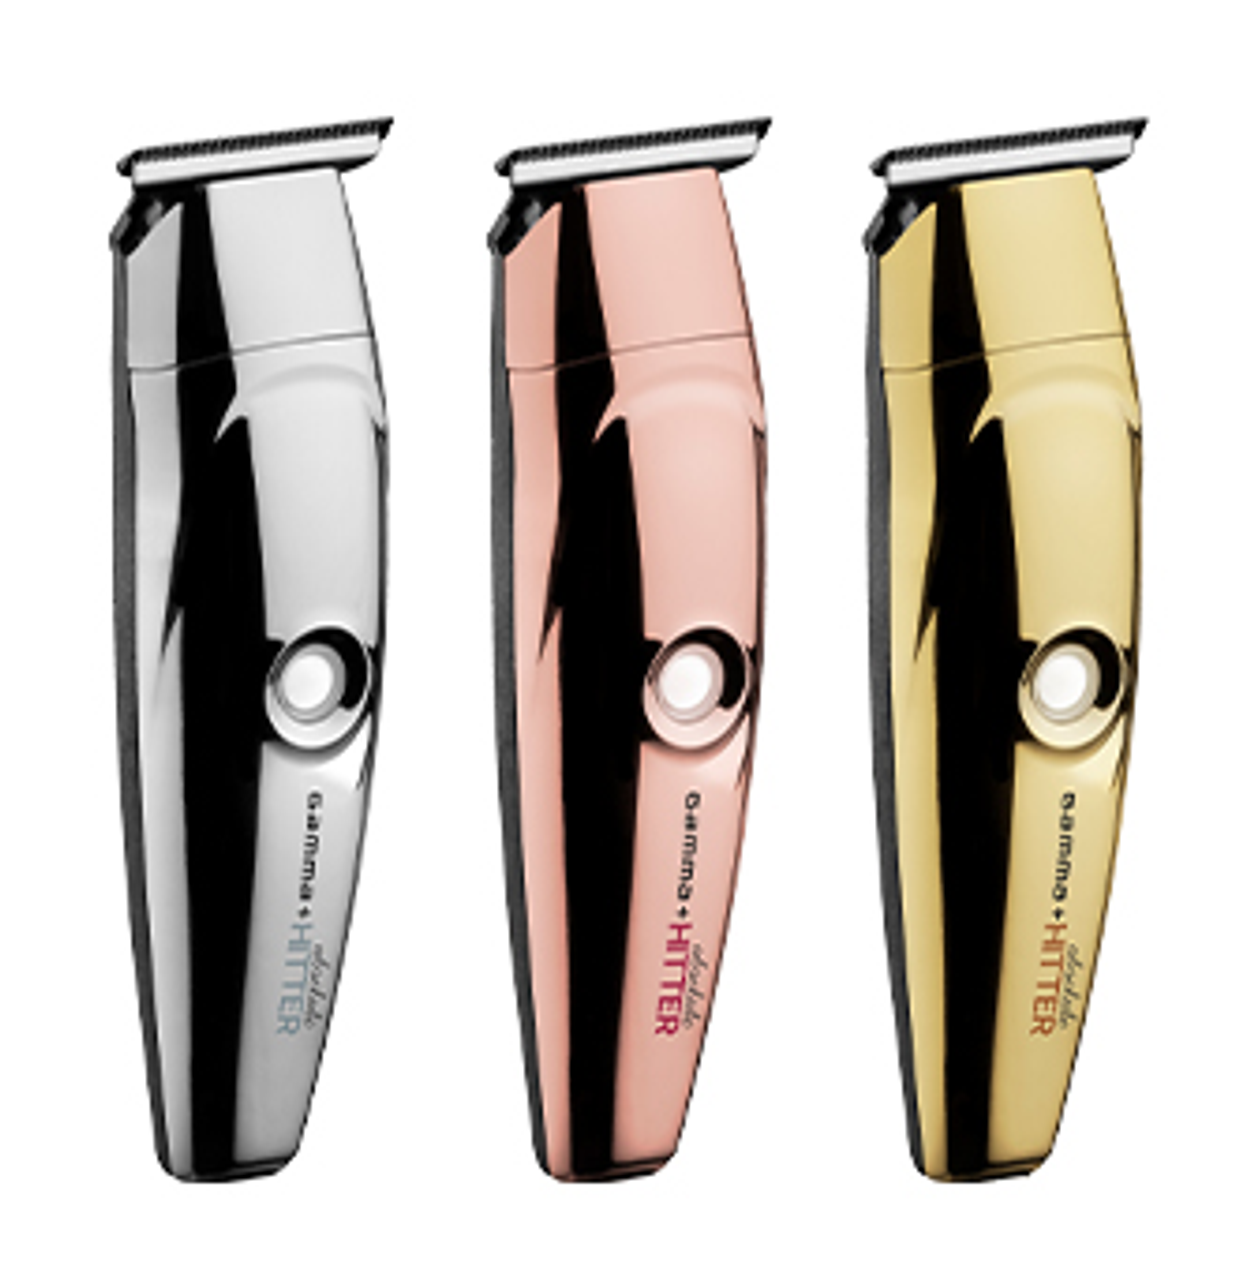 Gamma + Absolute Hitter Cordless Trimmer - Gold, Rosegold, Silver